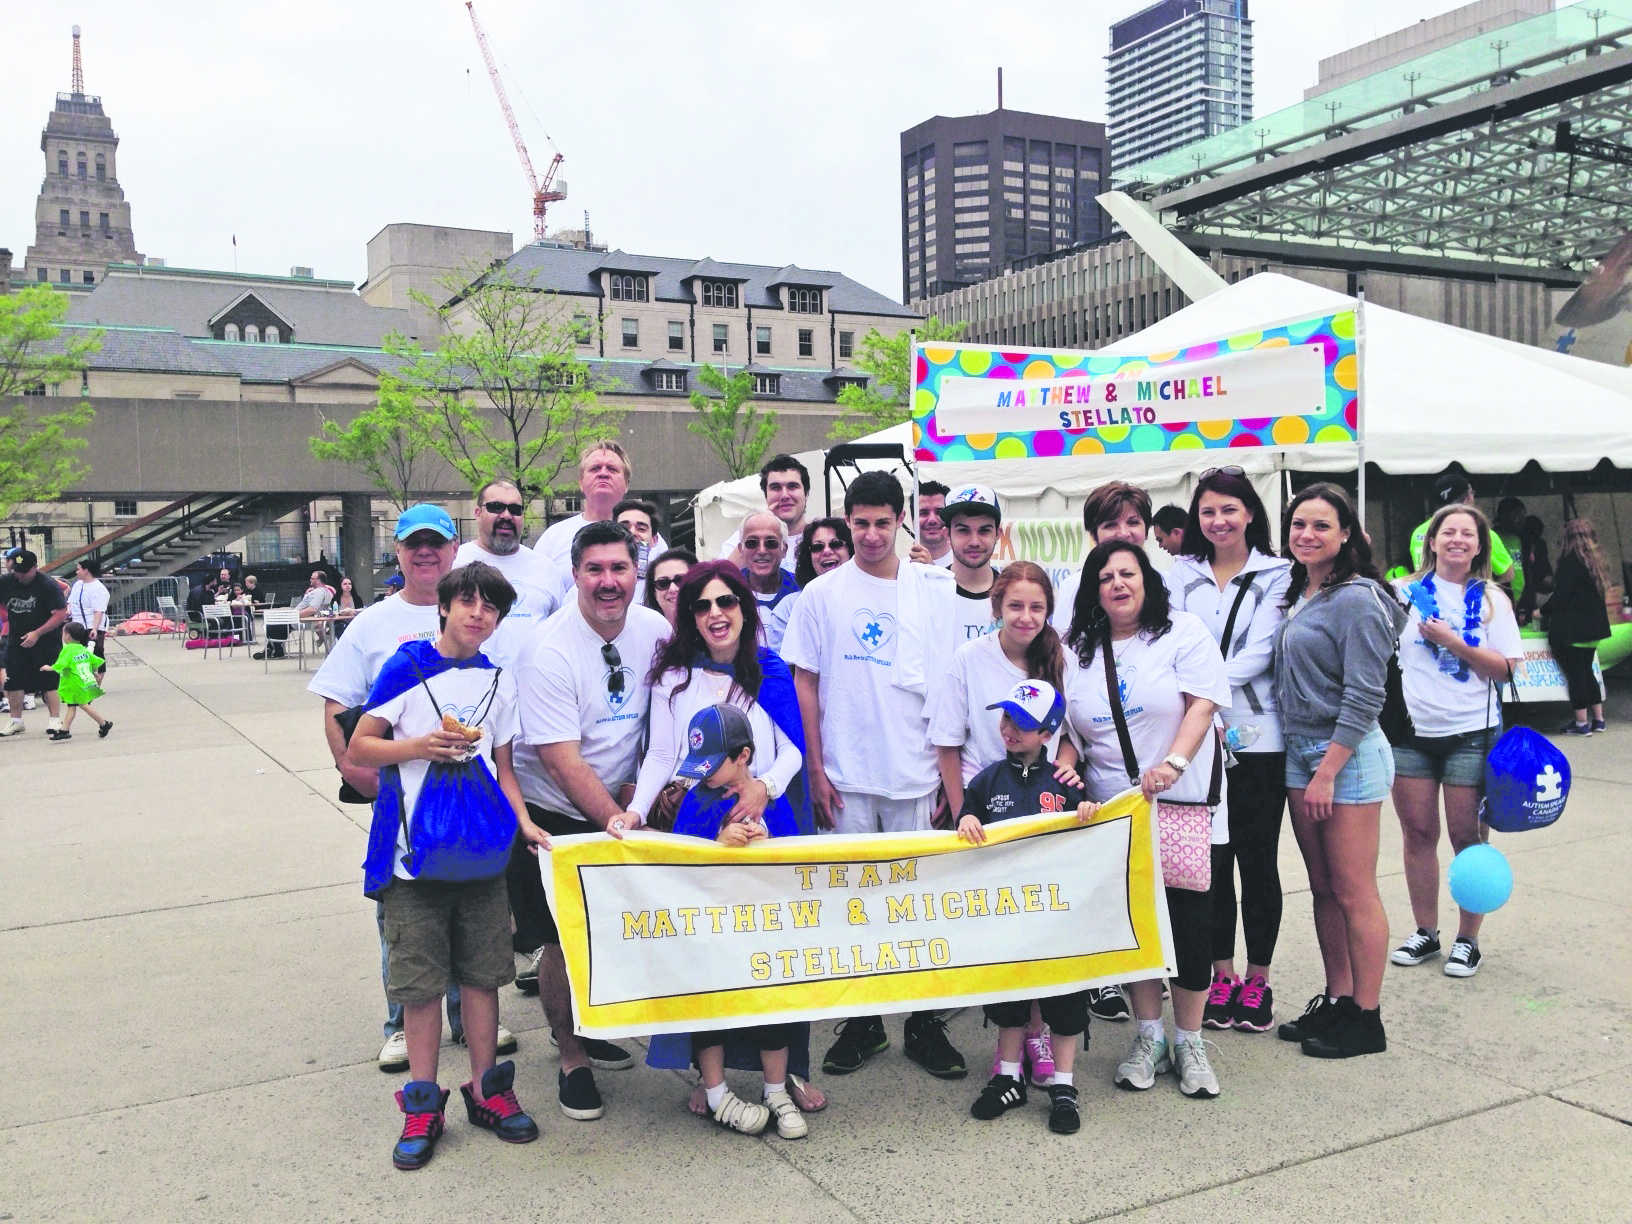 Community support is growing for Walk Now events across the country, says Paul Stellato, who is the local walk ambassador in Toronto and father of two young boys with autism. supplied